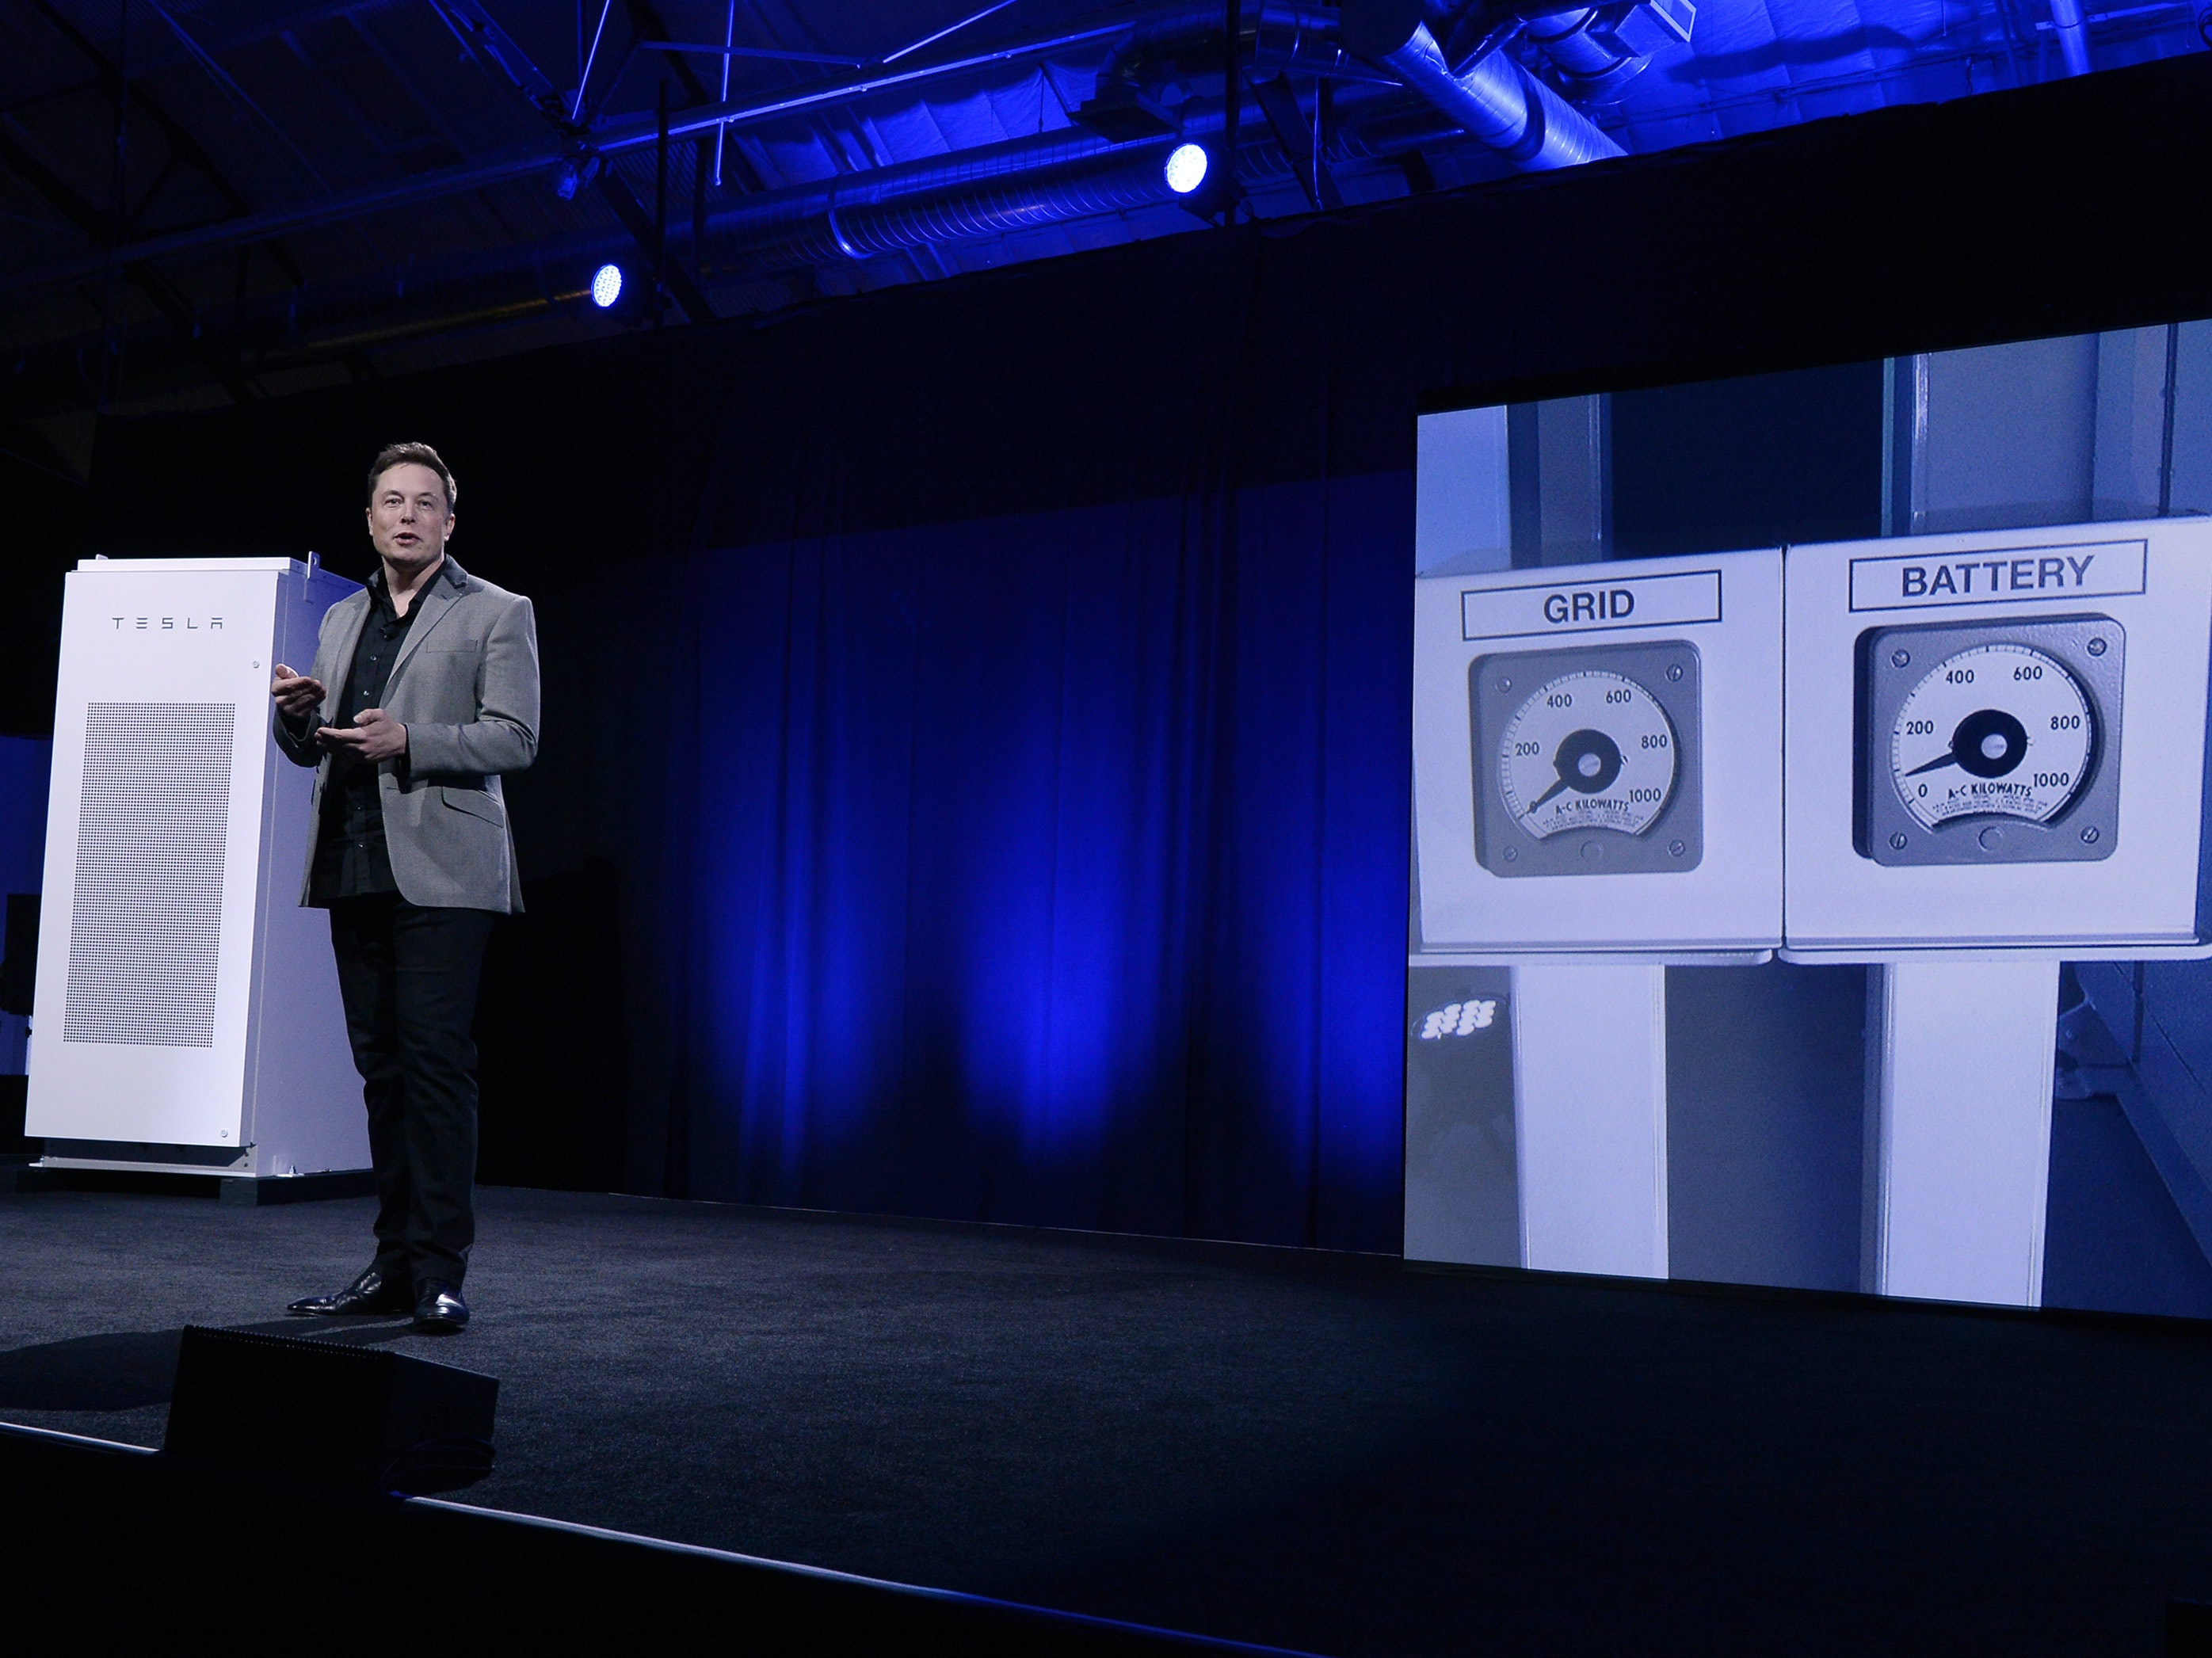 Elon Musk presenting his company's home-storage batteries.